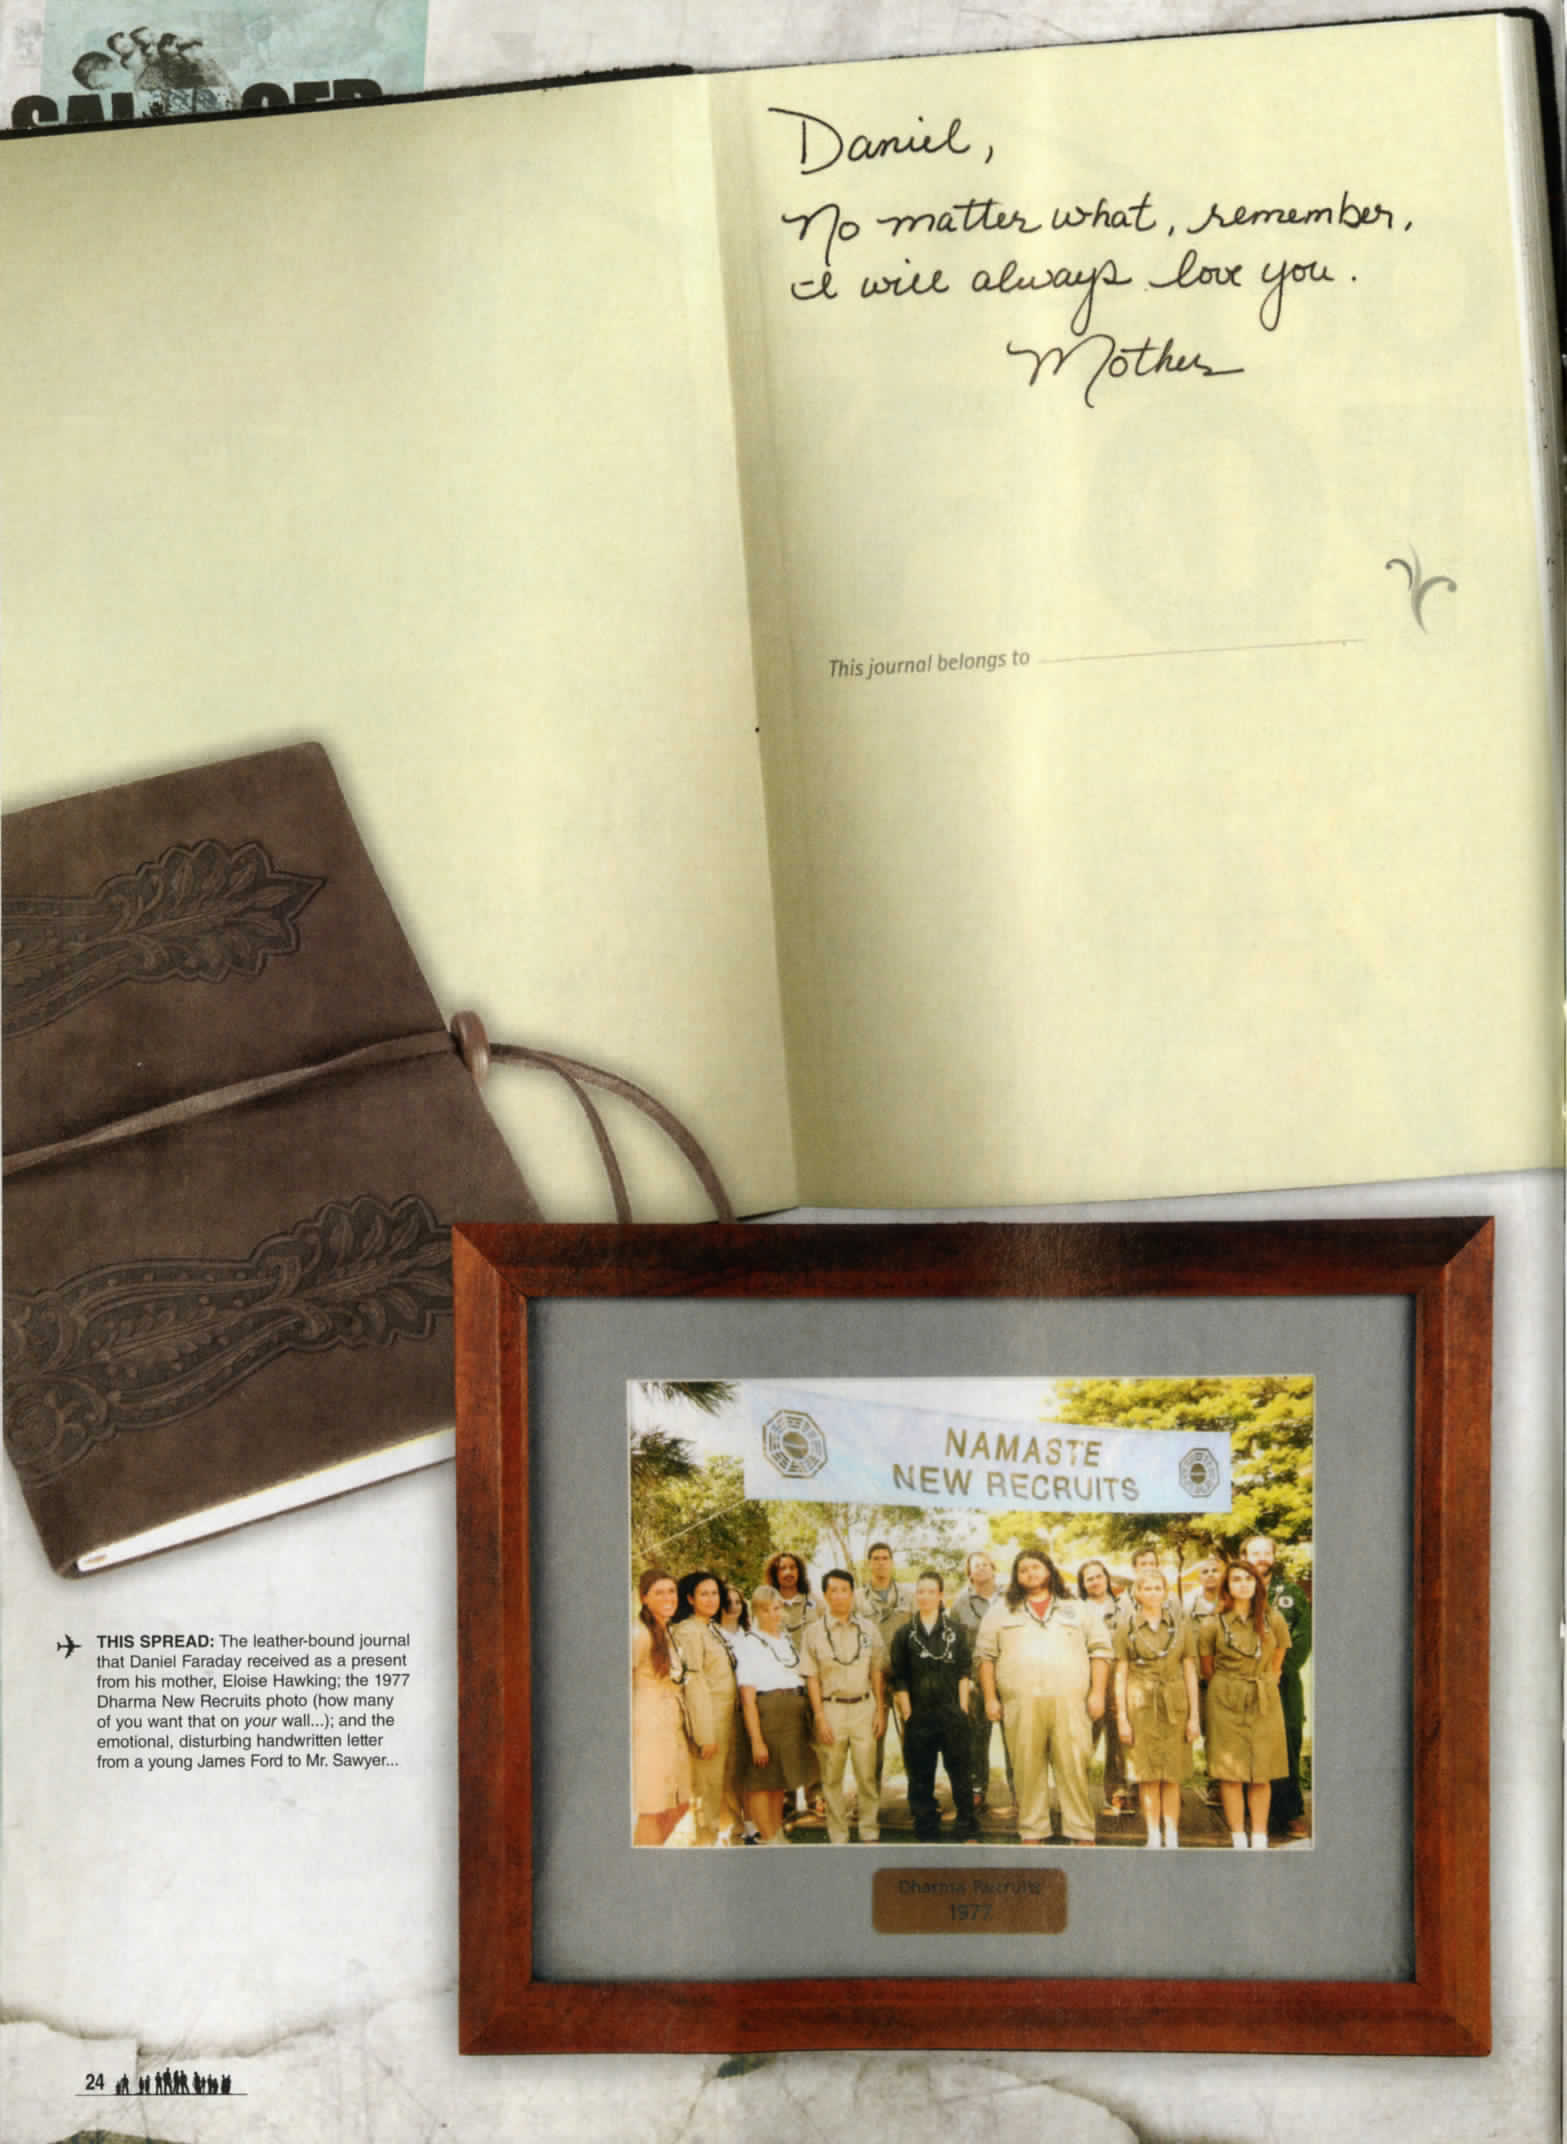 lost the official magazine, with a picture of a photograph of the dharma recruits